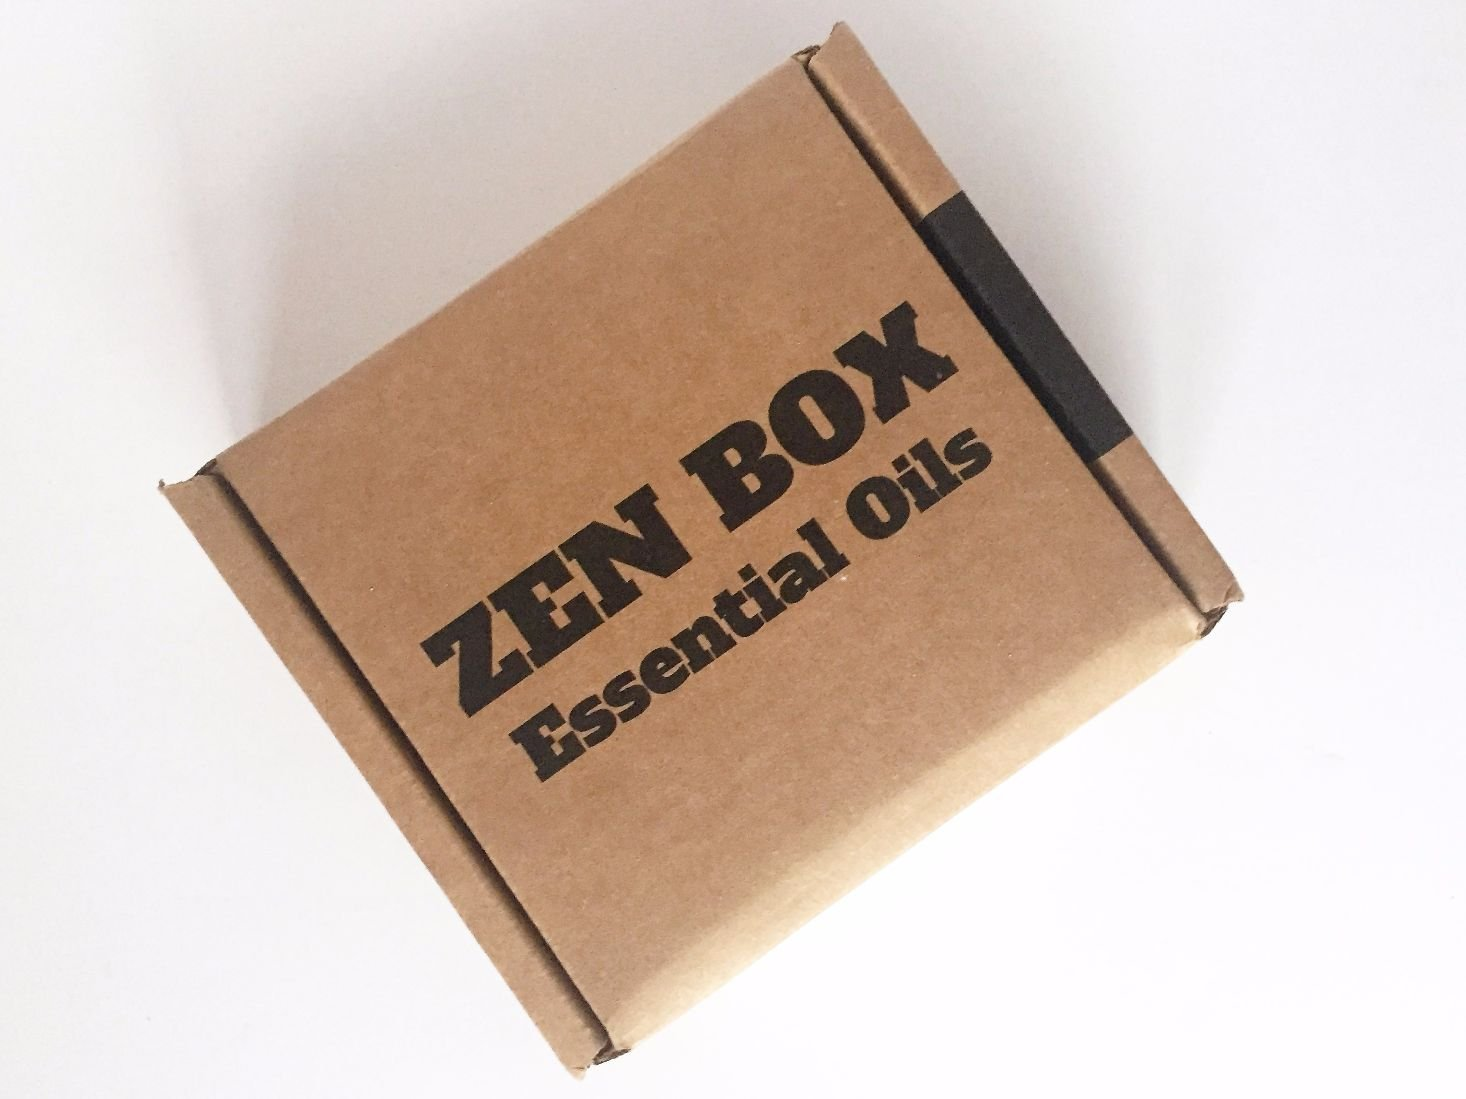 zen-box-october-2016-01closedbox-jpg